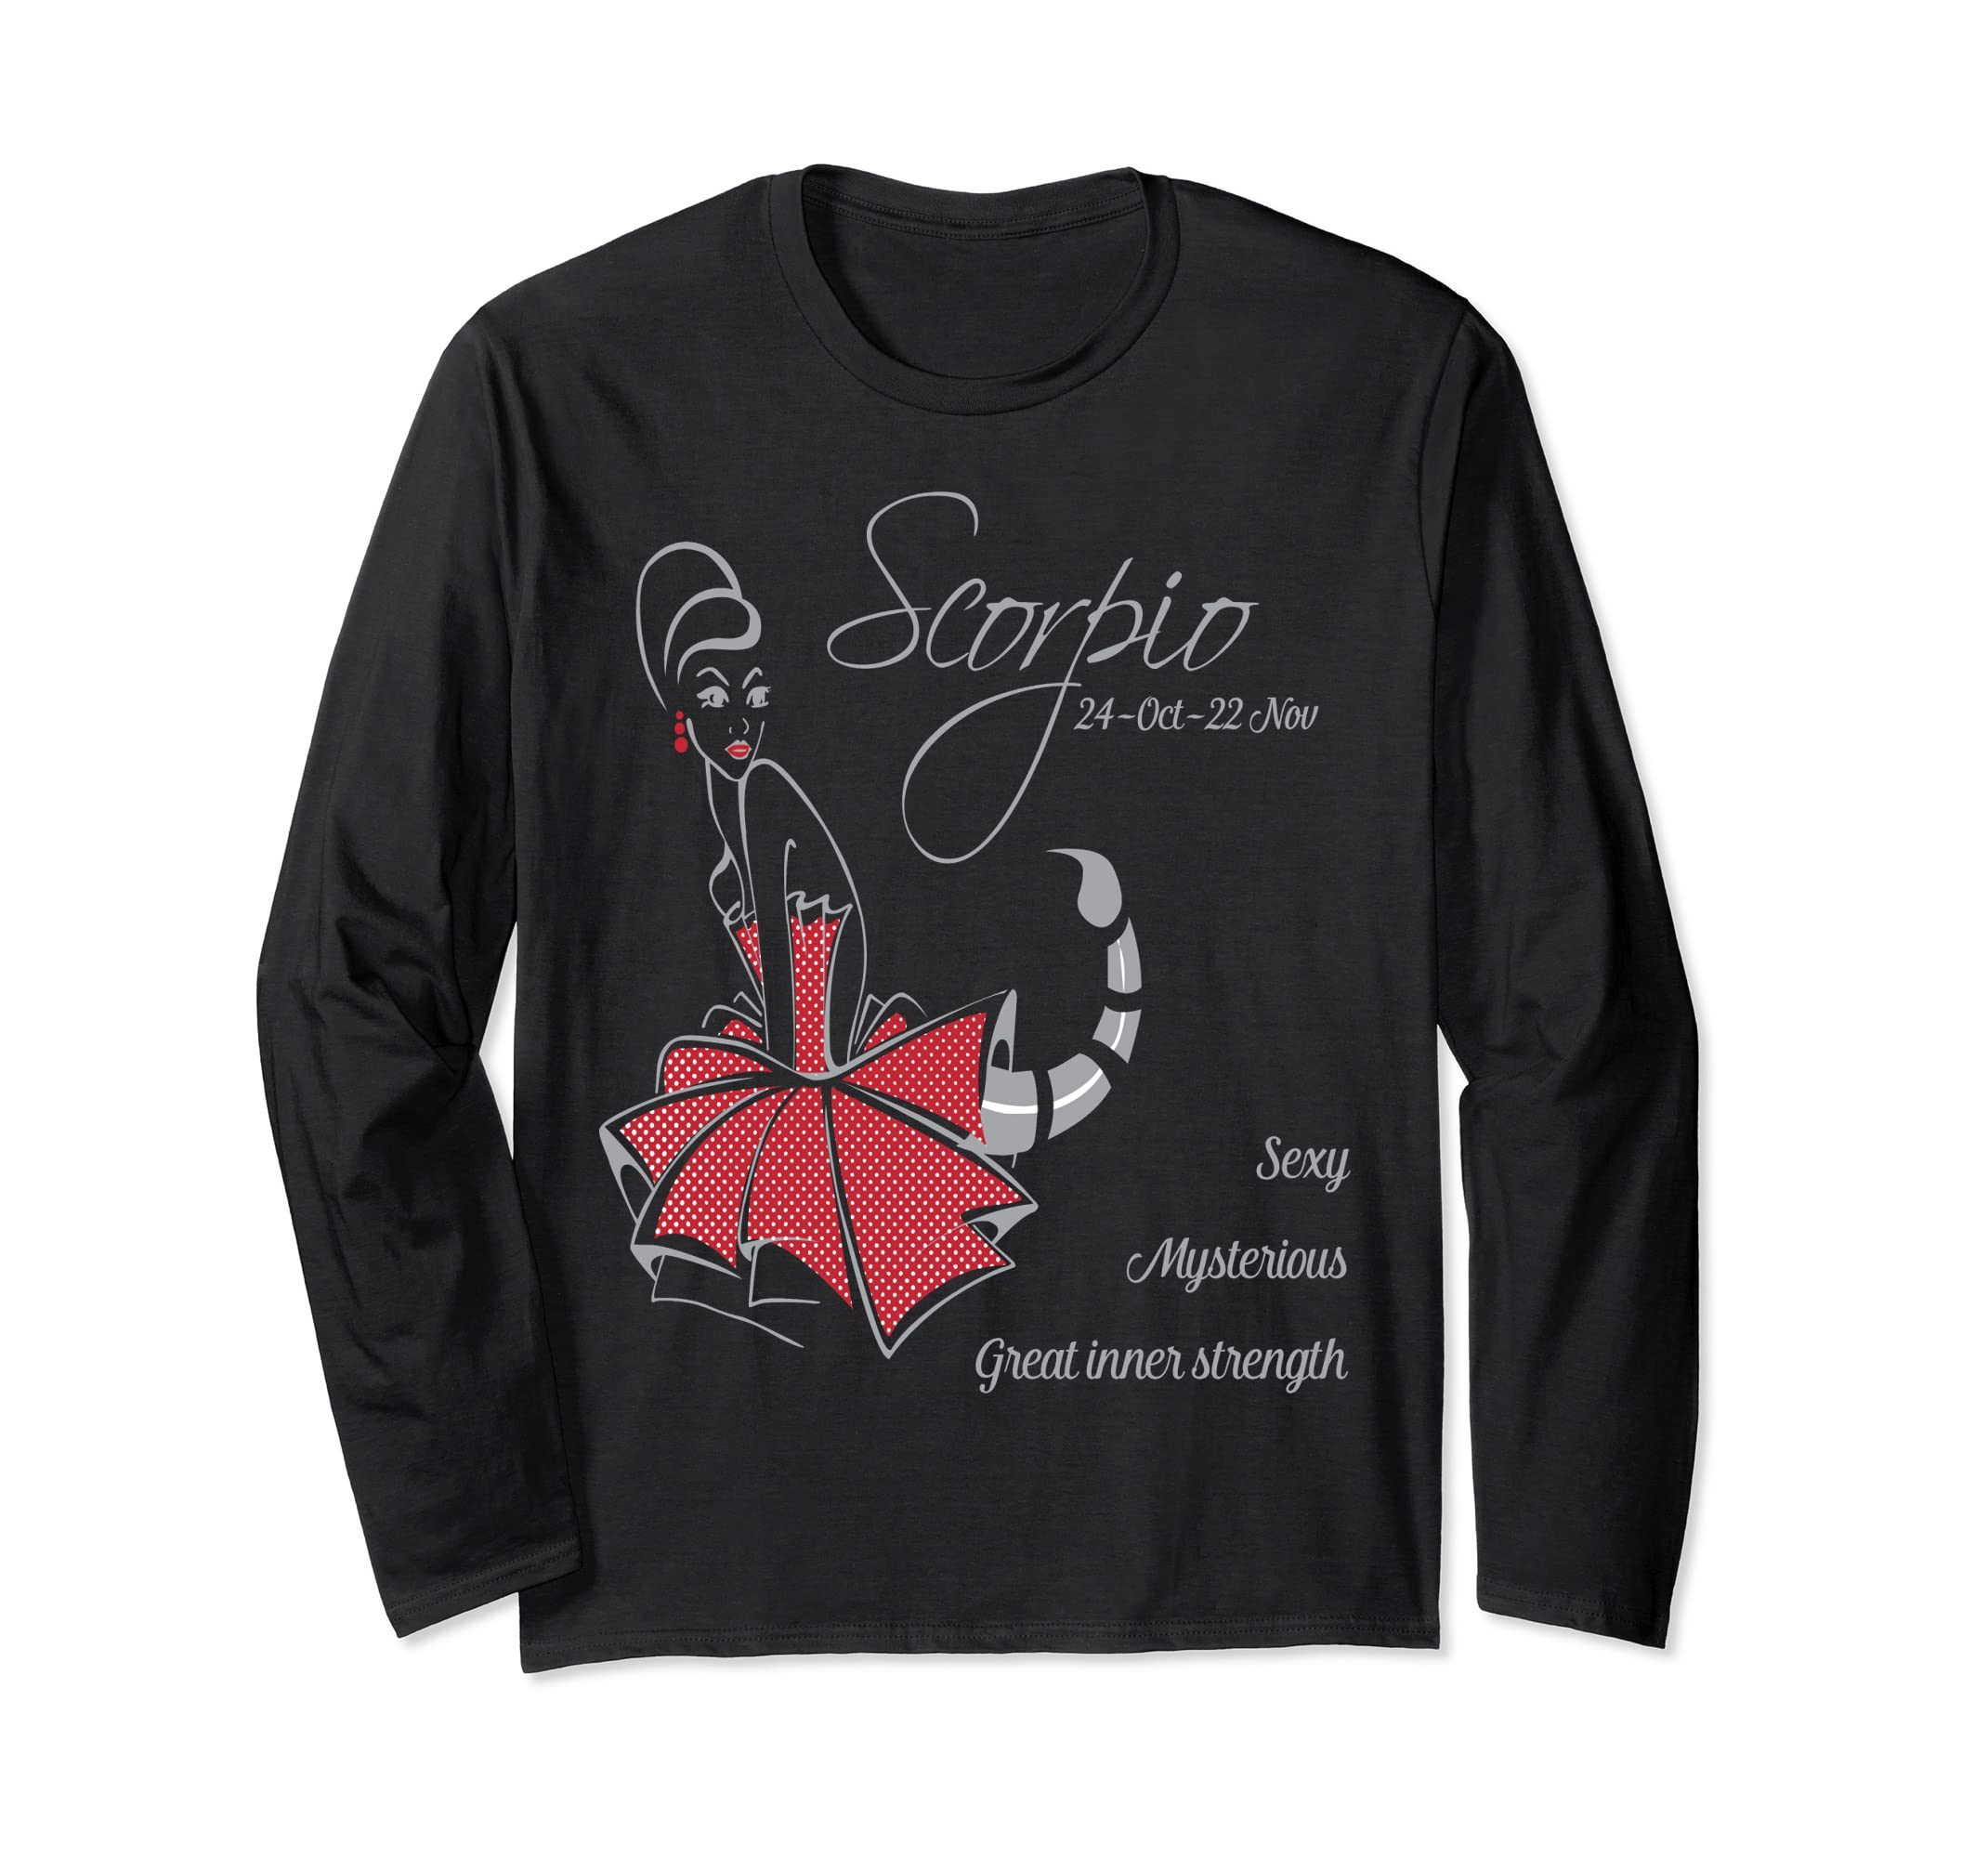 Amazon.com: Scorpio Beauty For Gift Long Sleeve: Clothing